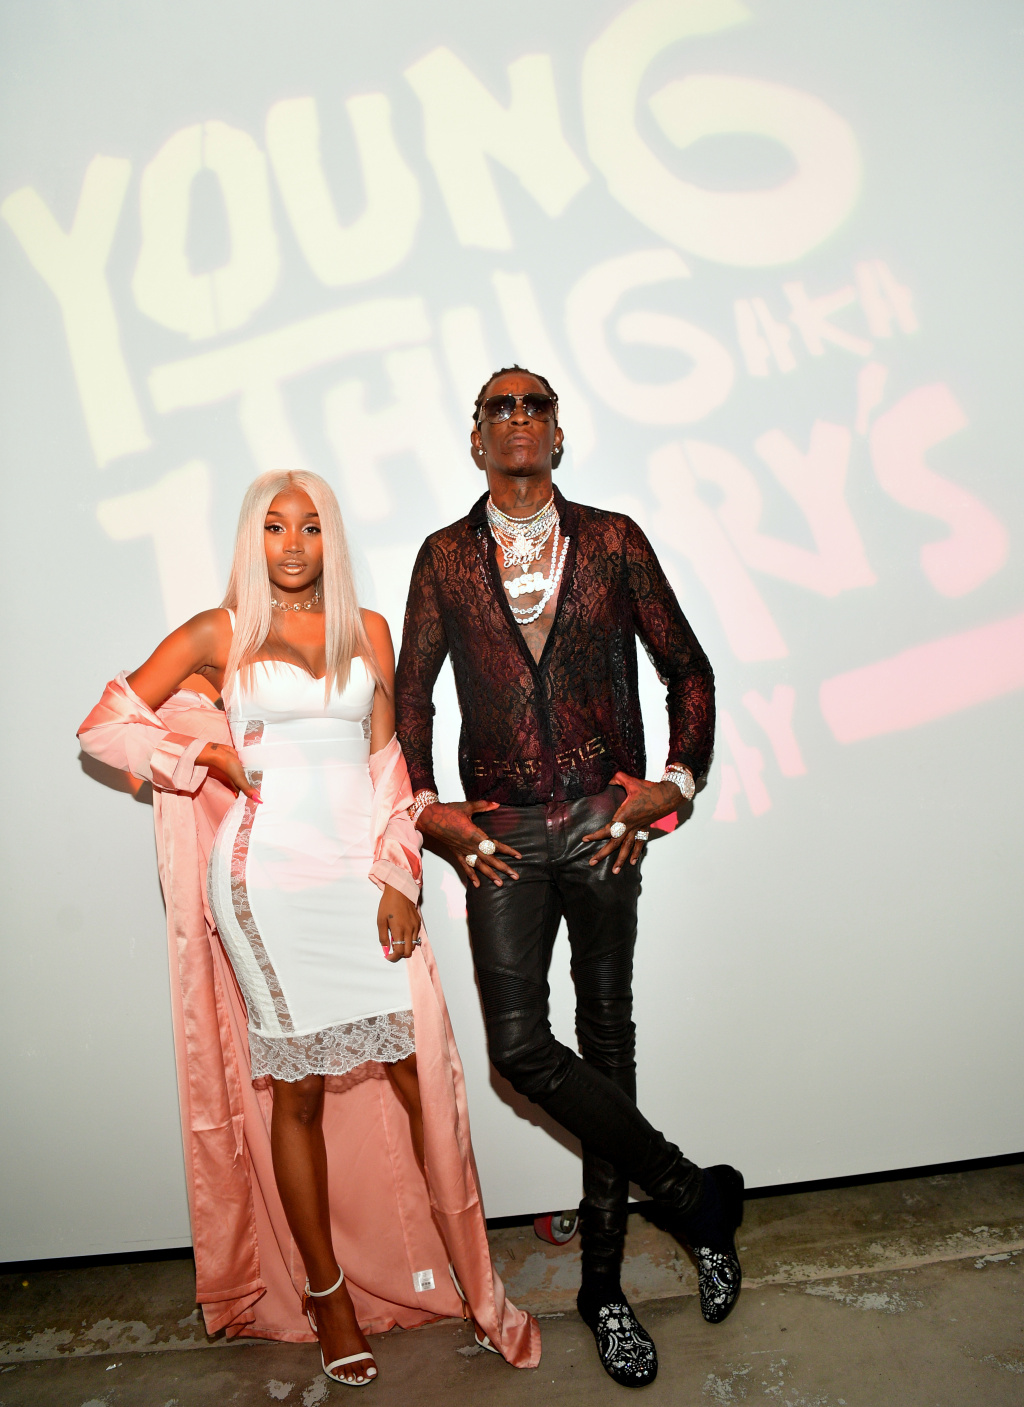 ATLANTA,   GA - AUGUST 15: Jerrika Karlae and Young Thug attend Young Thug's 25th Birthday and PUMA AW16 Campaign on August 15,   2016 in Atlanta, Georgia. (Photo by Prince Williams/Getty Images for PUMA)